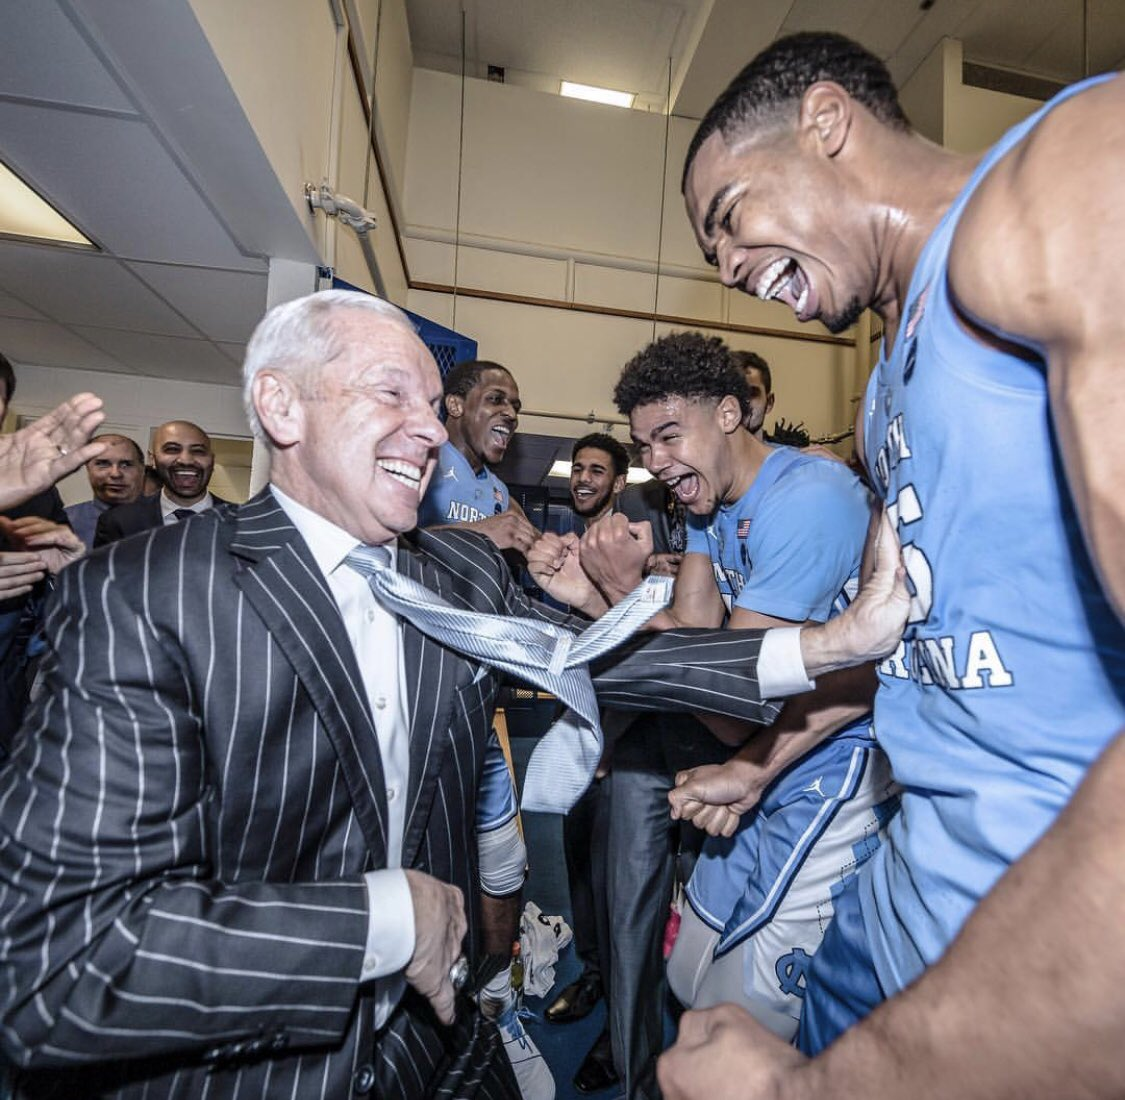 That feeling when Roy Williams gets named USA Today's National Coach of the Year https://t.co/5qeJpyejCL